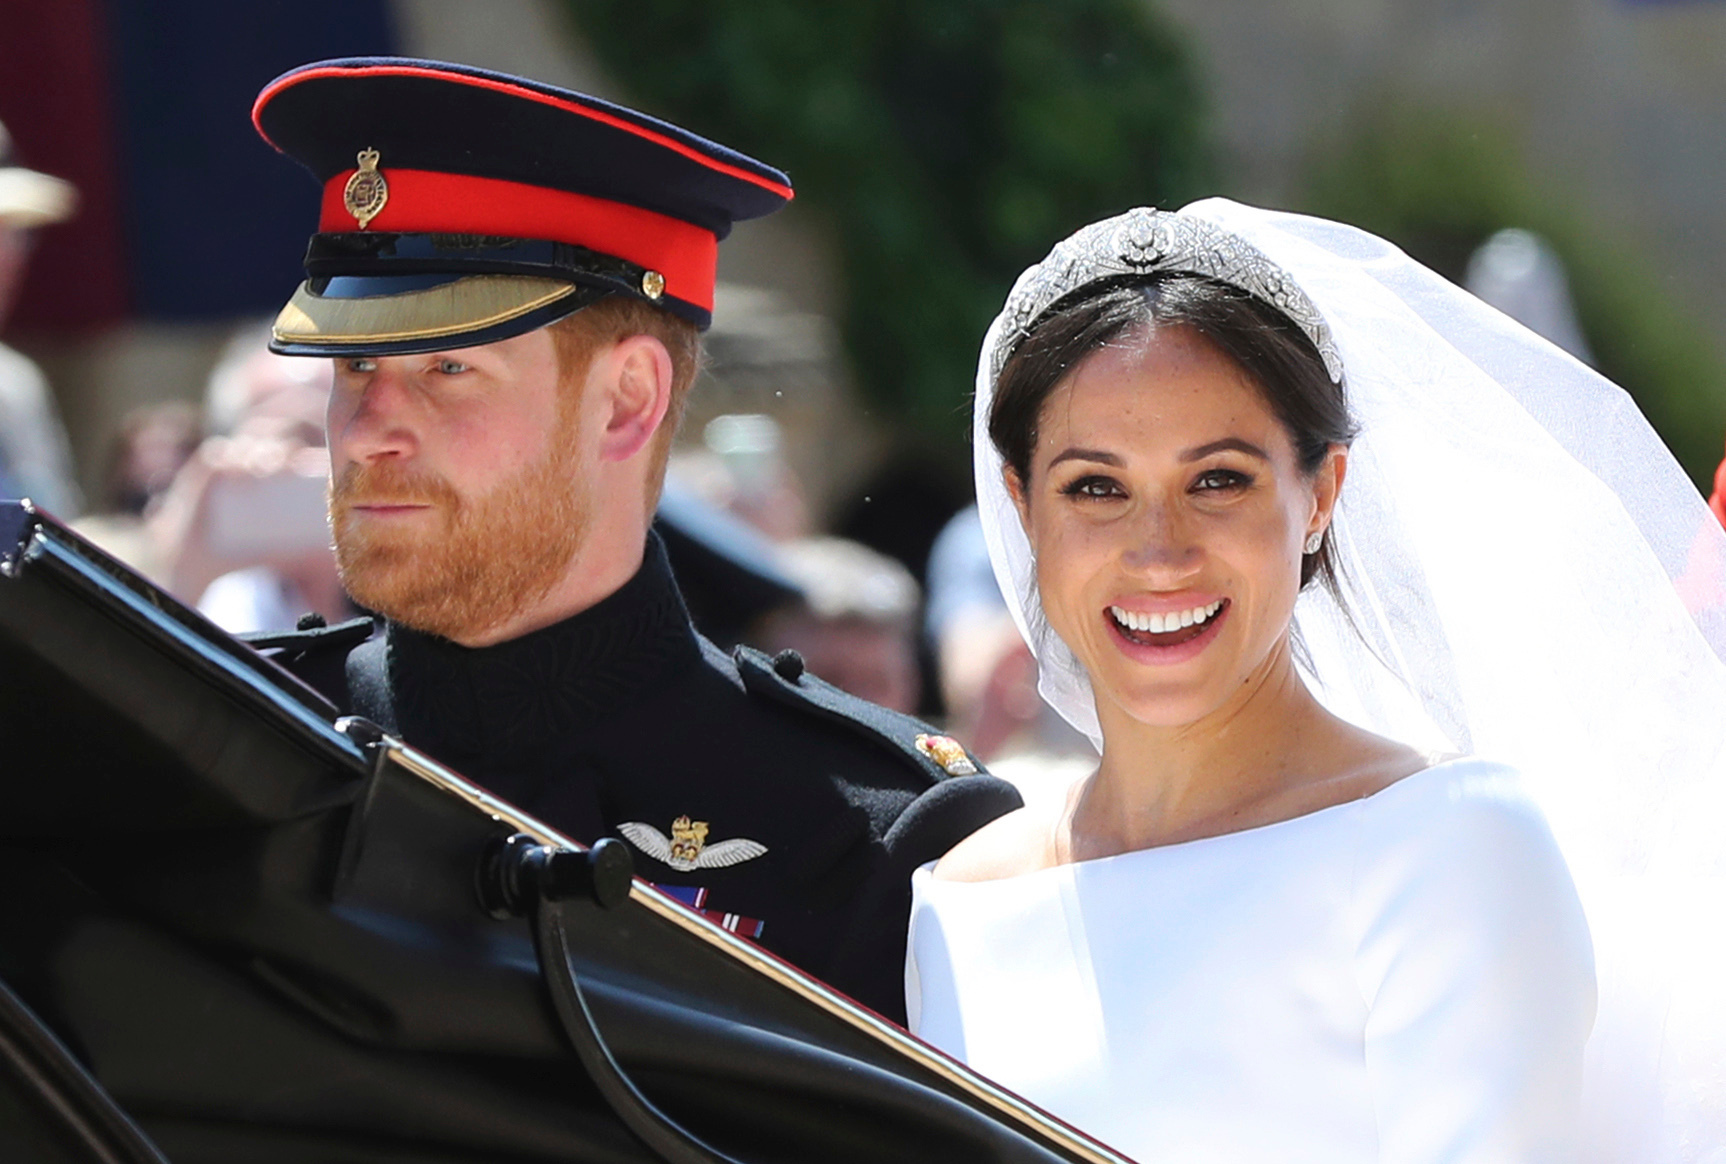 the truth behind meghan markle s wedding tiara row revealed nz herald https www nzherald co nz lifestyle the truth behind meghan markles wedding tiara row revealed xx5gxeghuoxanmqljwbuvql2jm